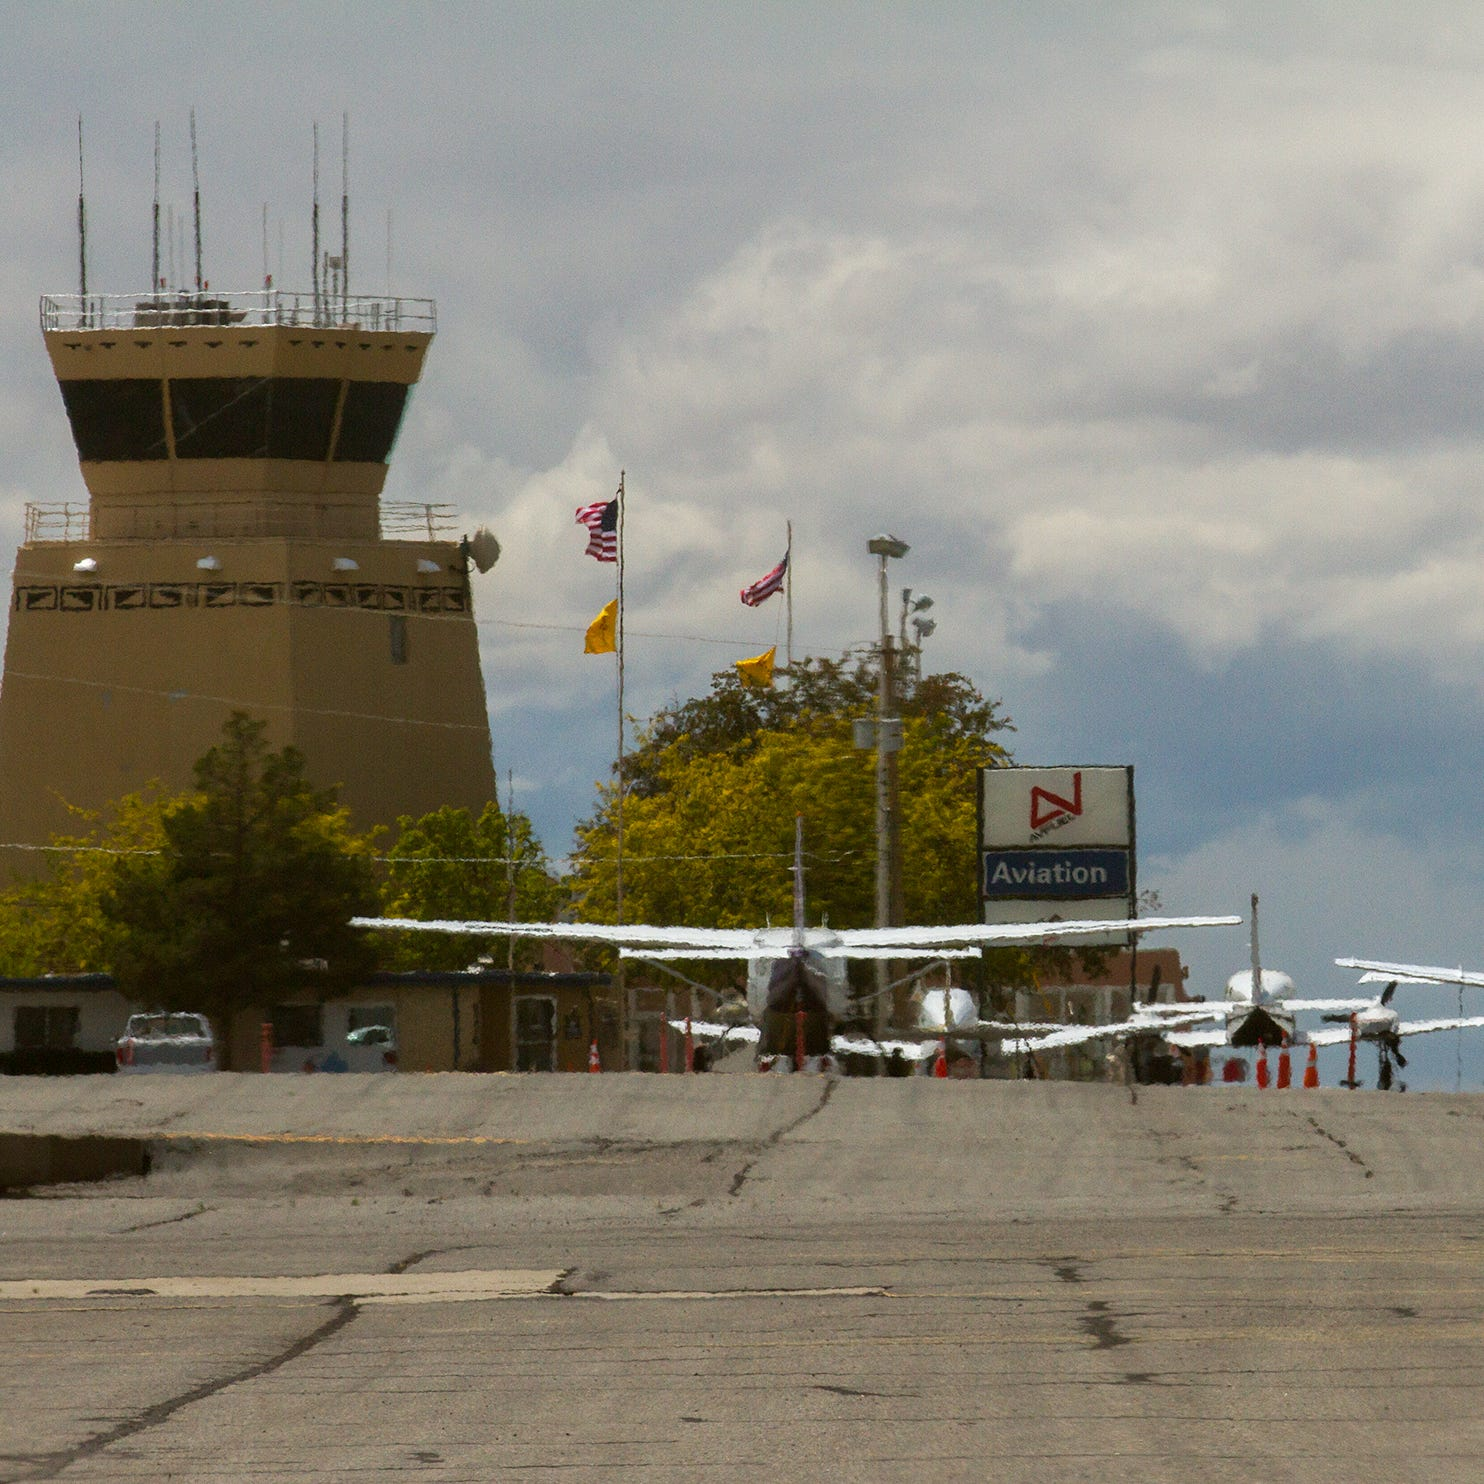 Farmington plans to return commercial air service to Four Corners Regional Airport